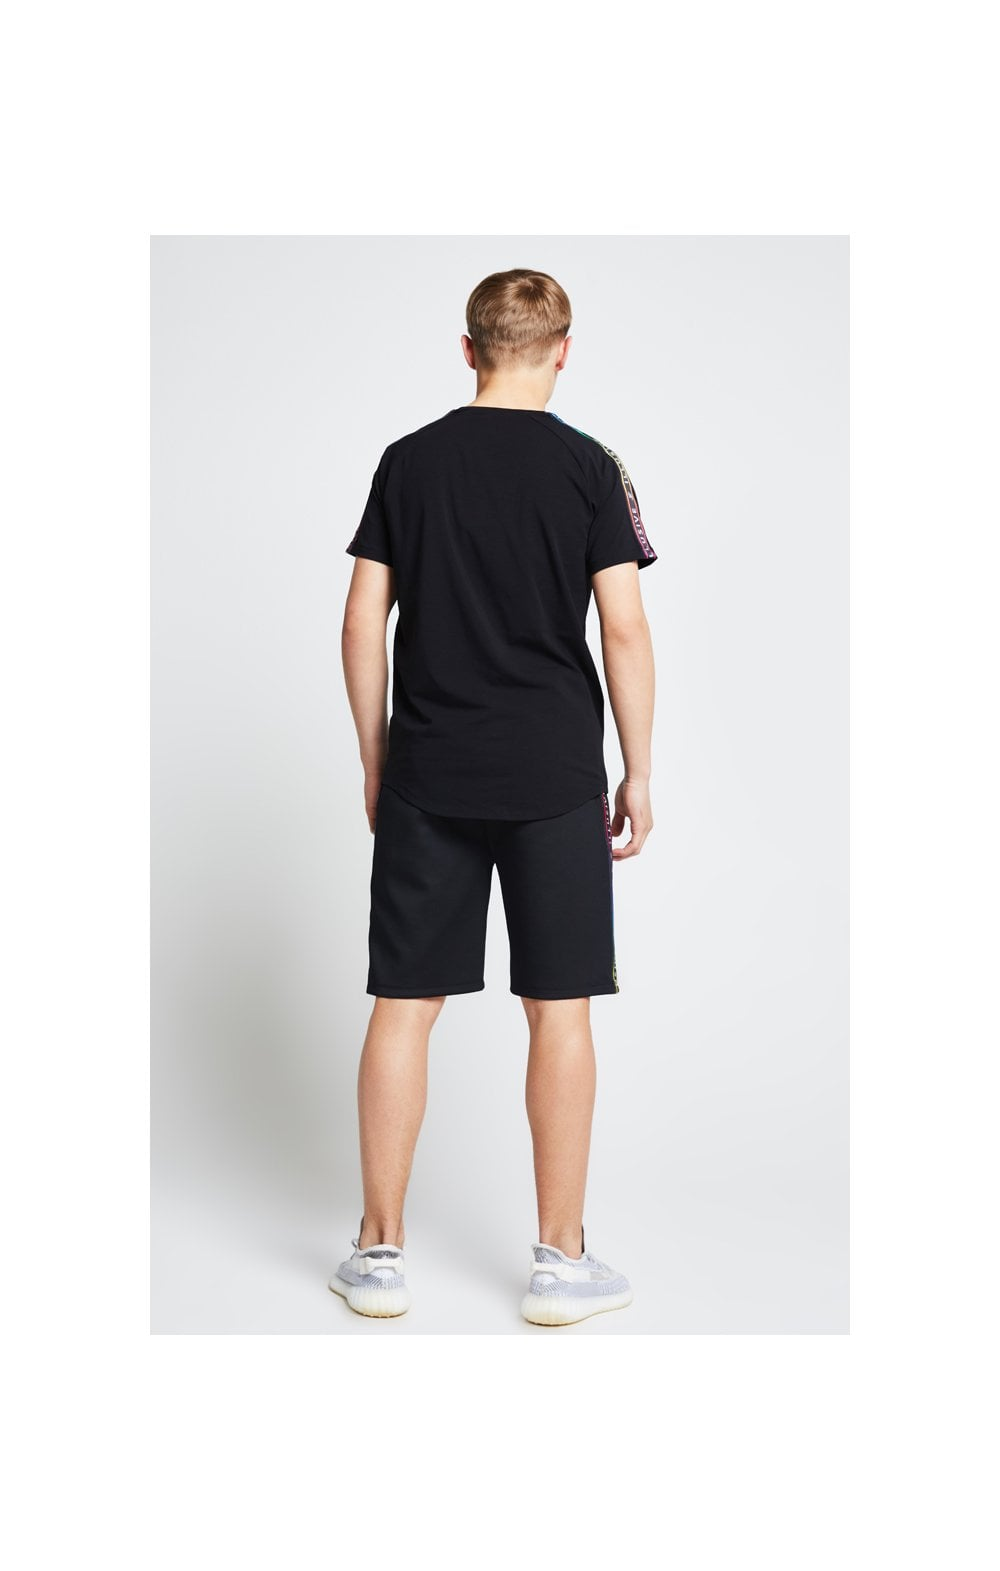 Illusive London Taped Raglan Tee - Black (5)